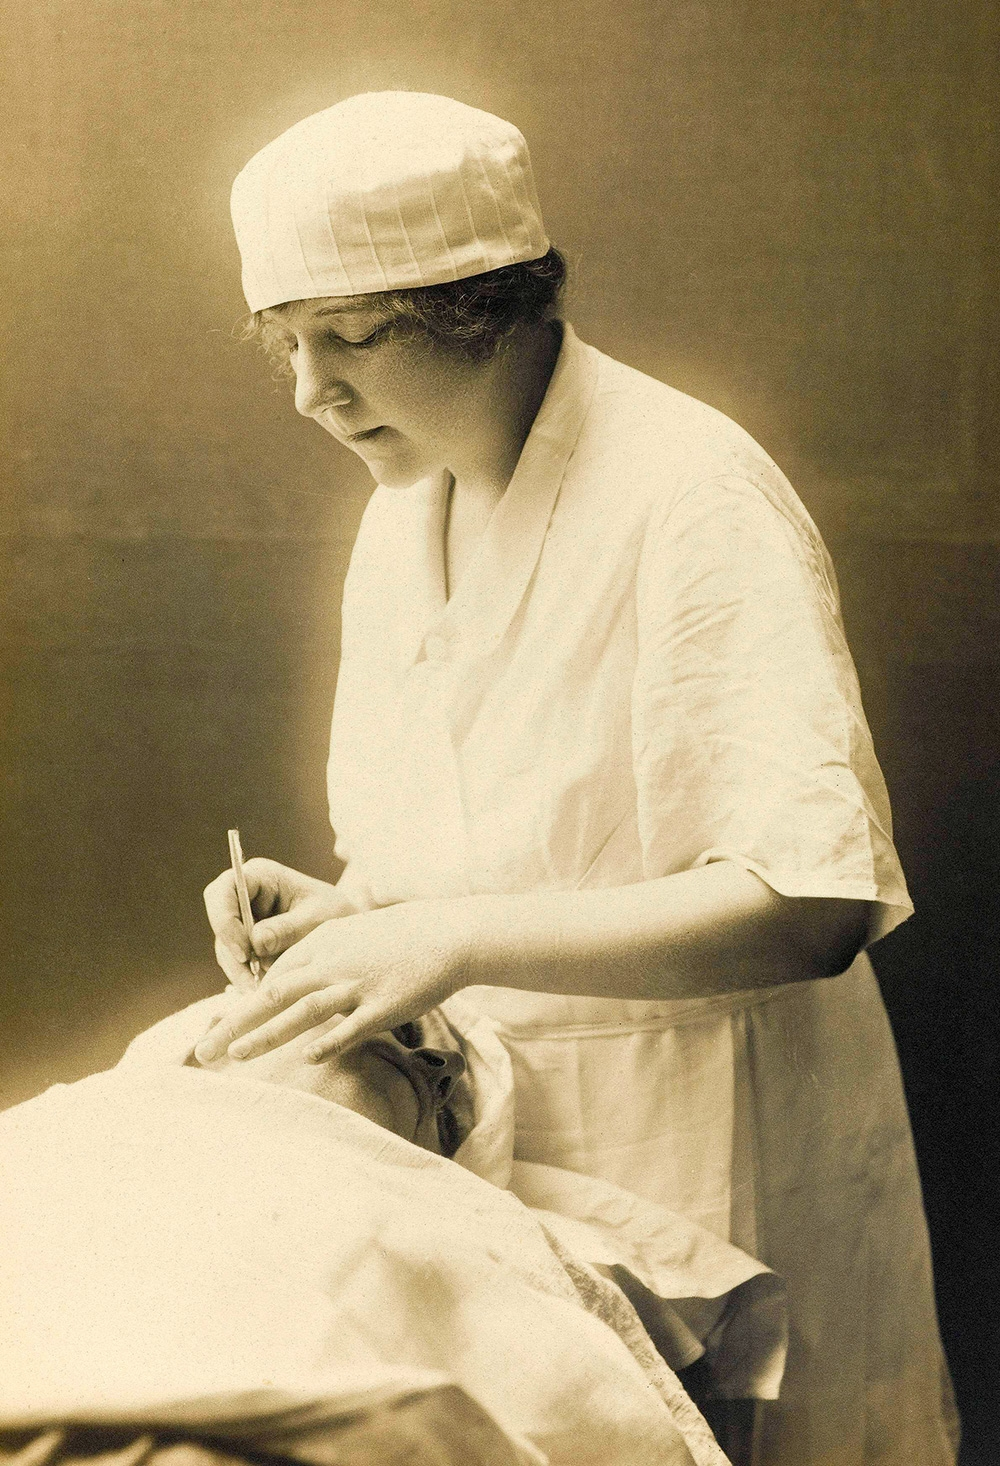 Suzanne Noel, one of the female pioneers of plastic surgery, circa 1918.